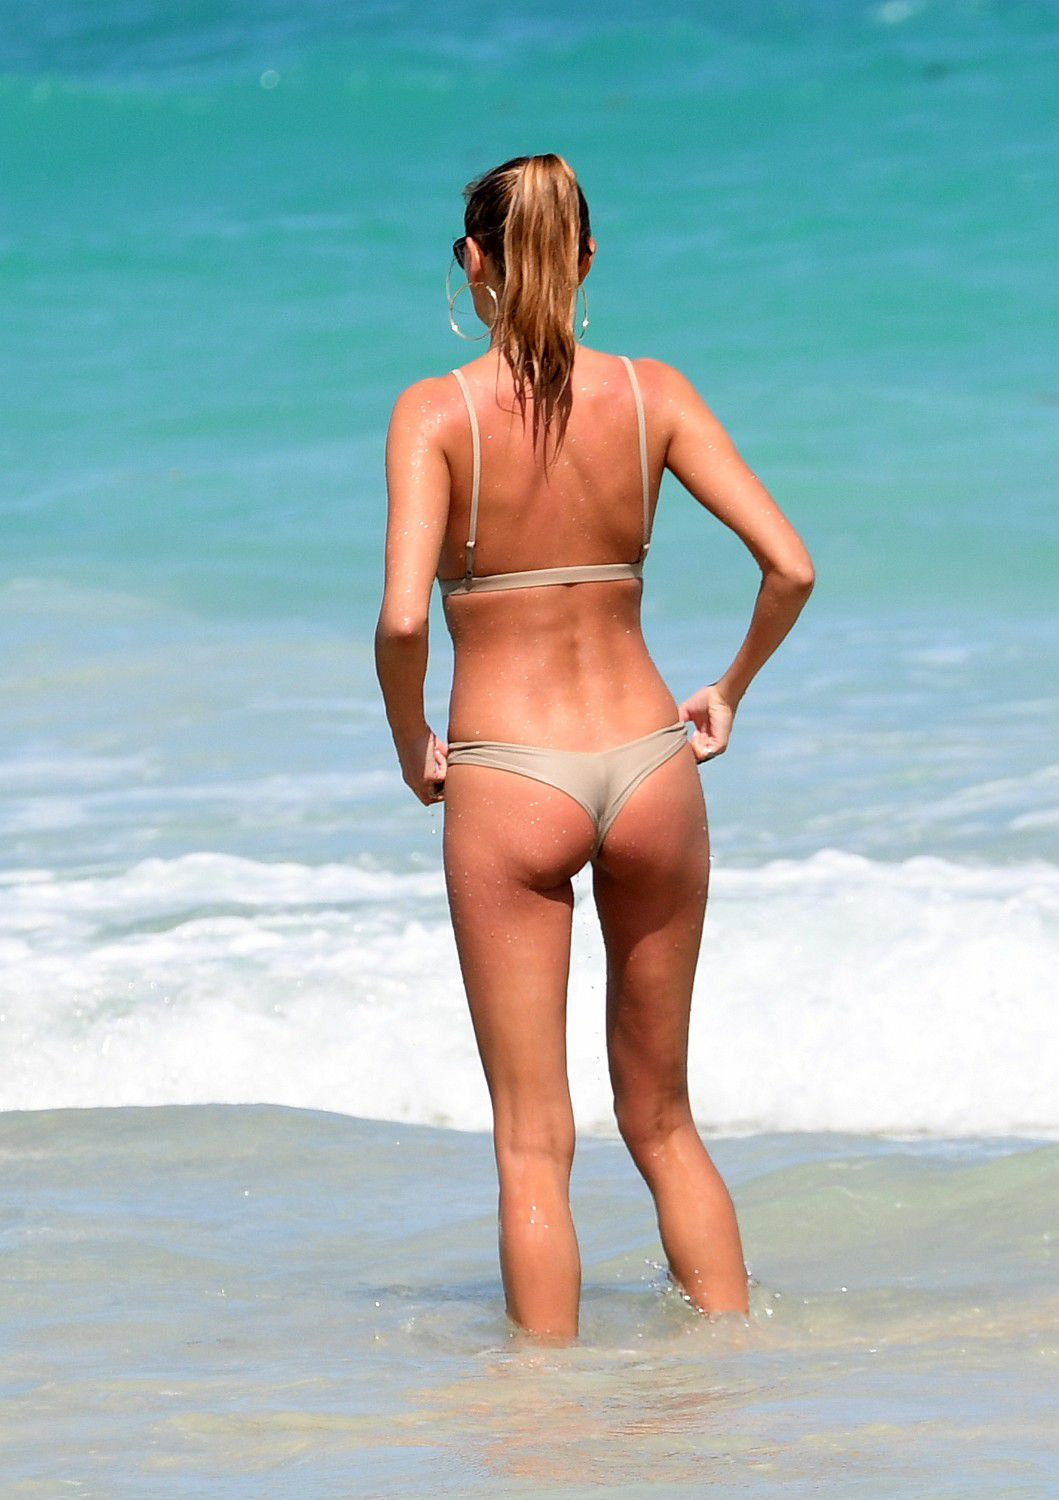 toni-garrn-sunbathing-topless-on-the-beach-in-miami-9361